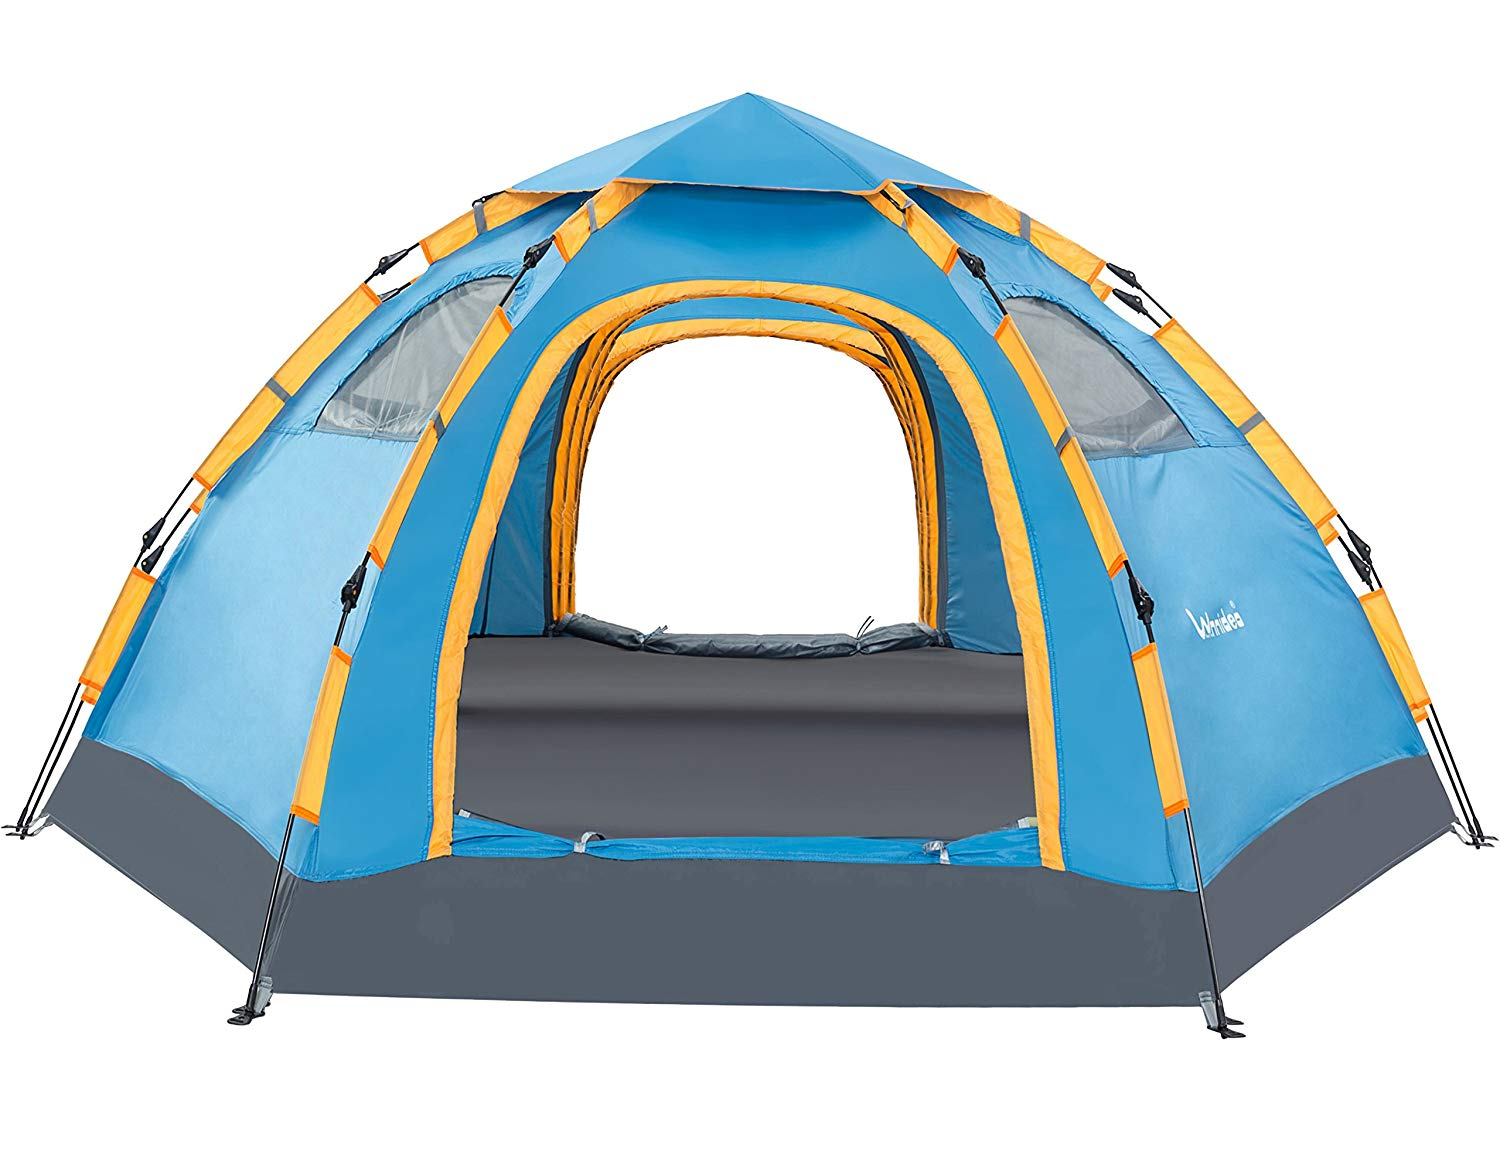 Single girls guide to camping tent pick: Wnnideo 4 Person Pop-up Tent